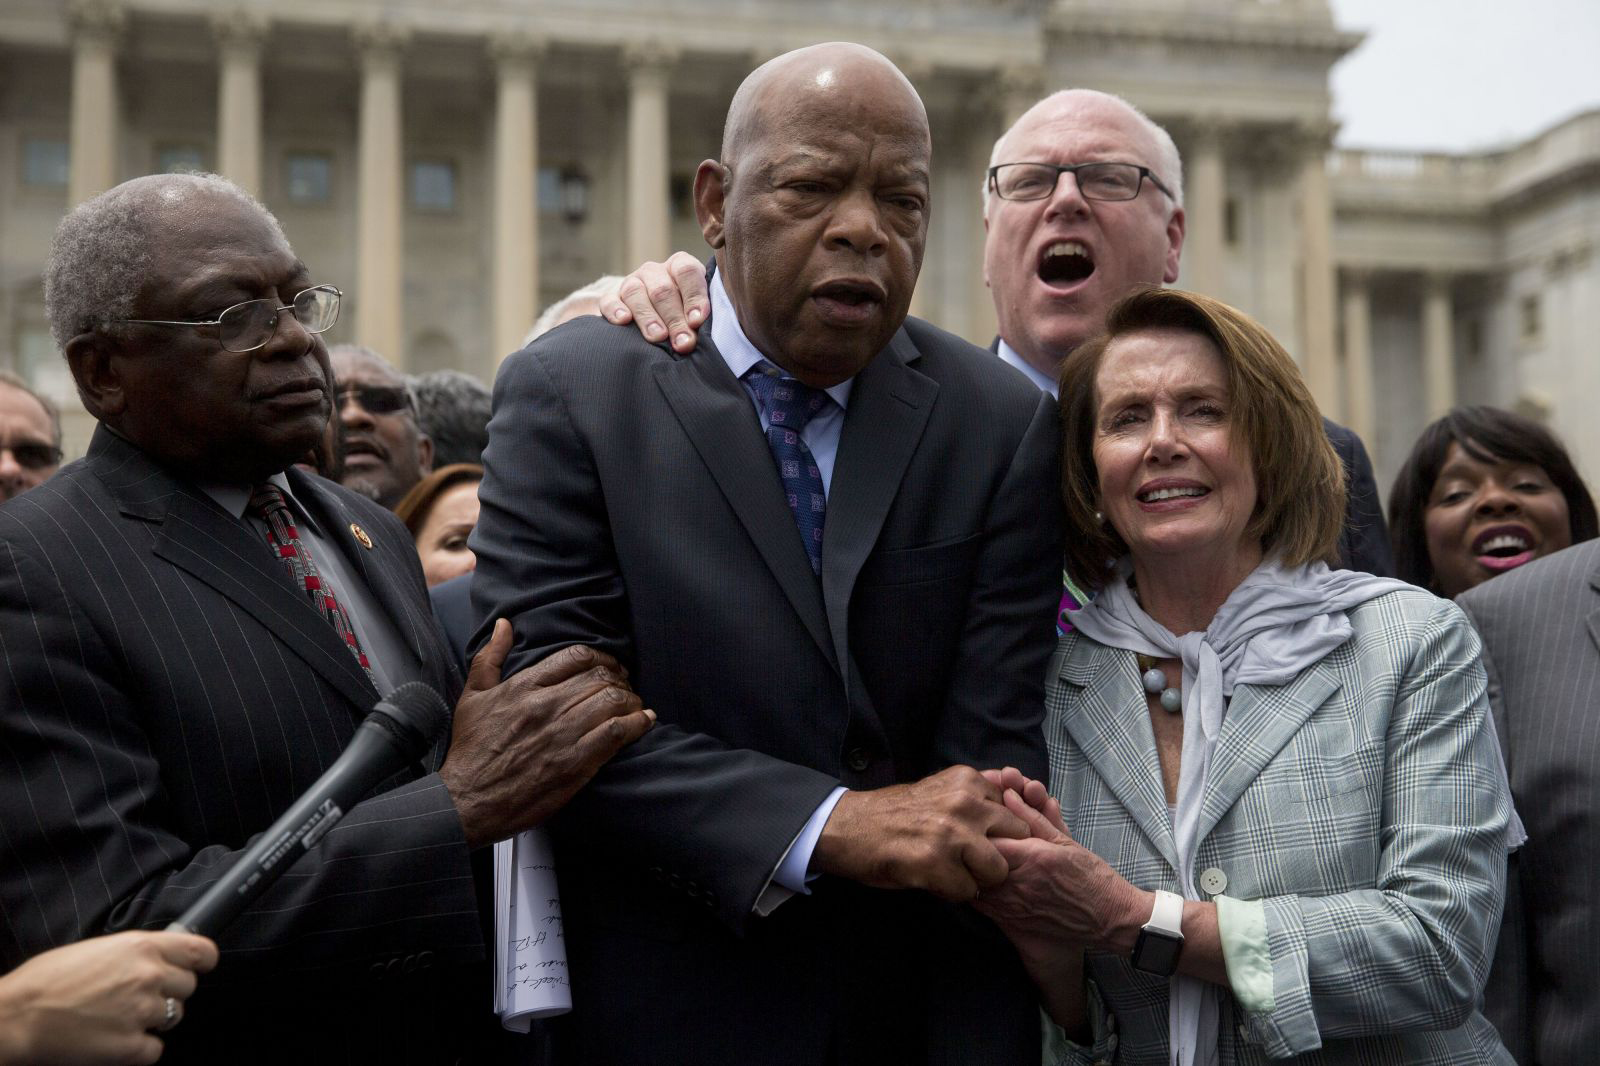 John Lewis is joined by Nancy Pelosi and US Reps. Jim Clyburn and Joe Crowley as Democrats sing a song outside the US Capitol in June 2016.